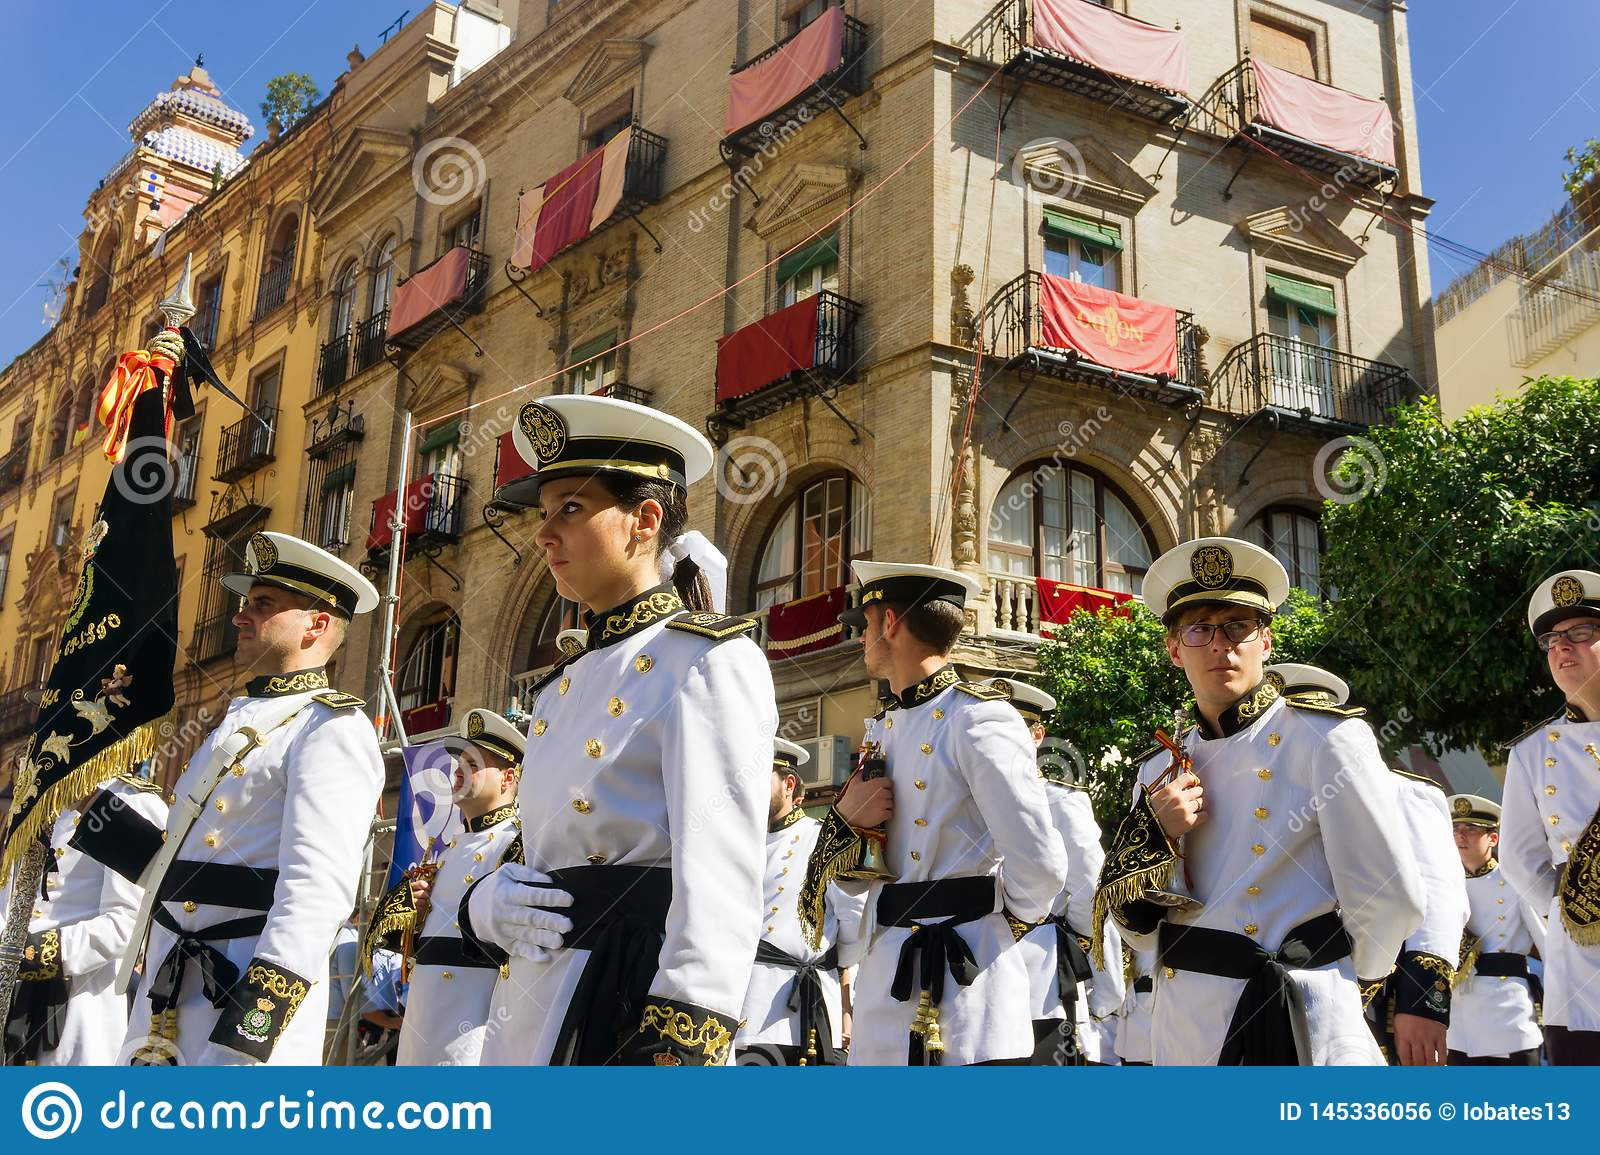 Military Band in Seville, Spain